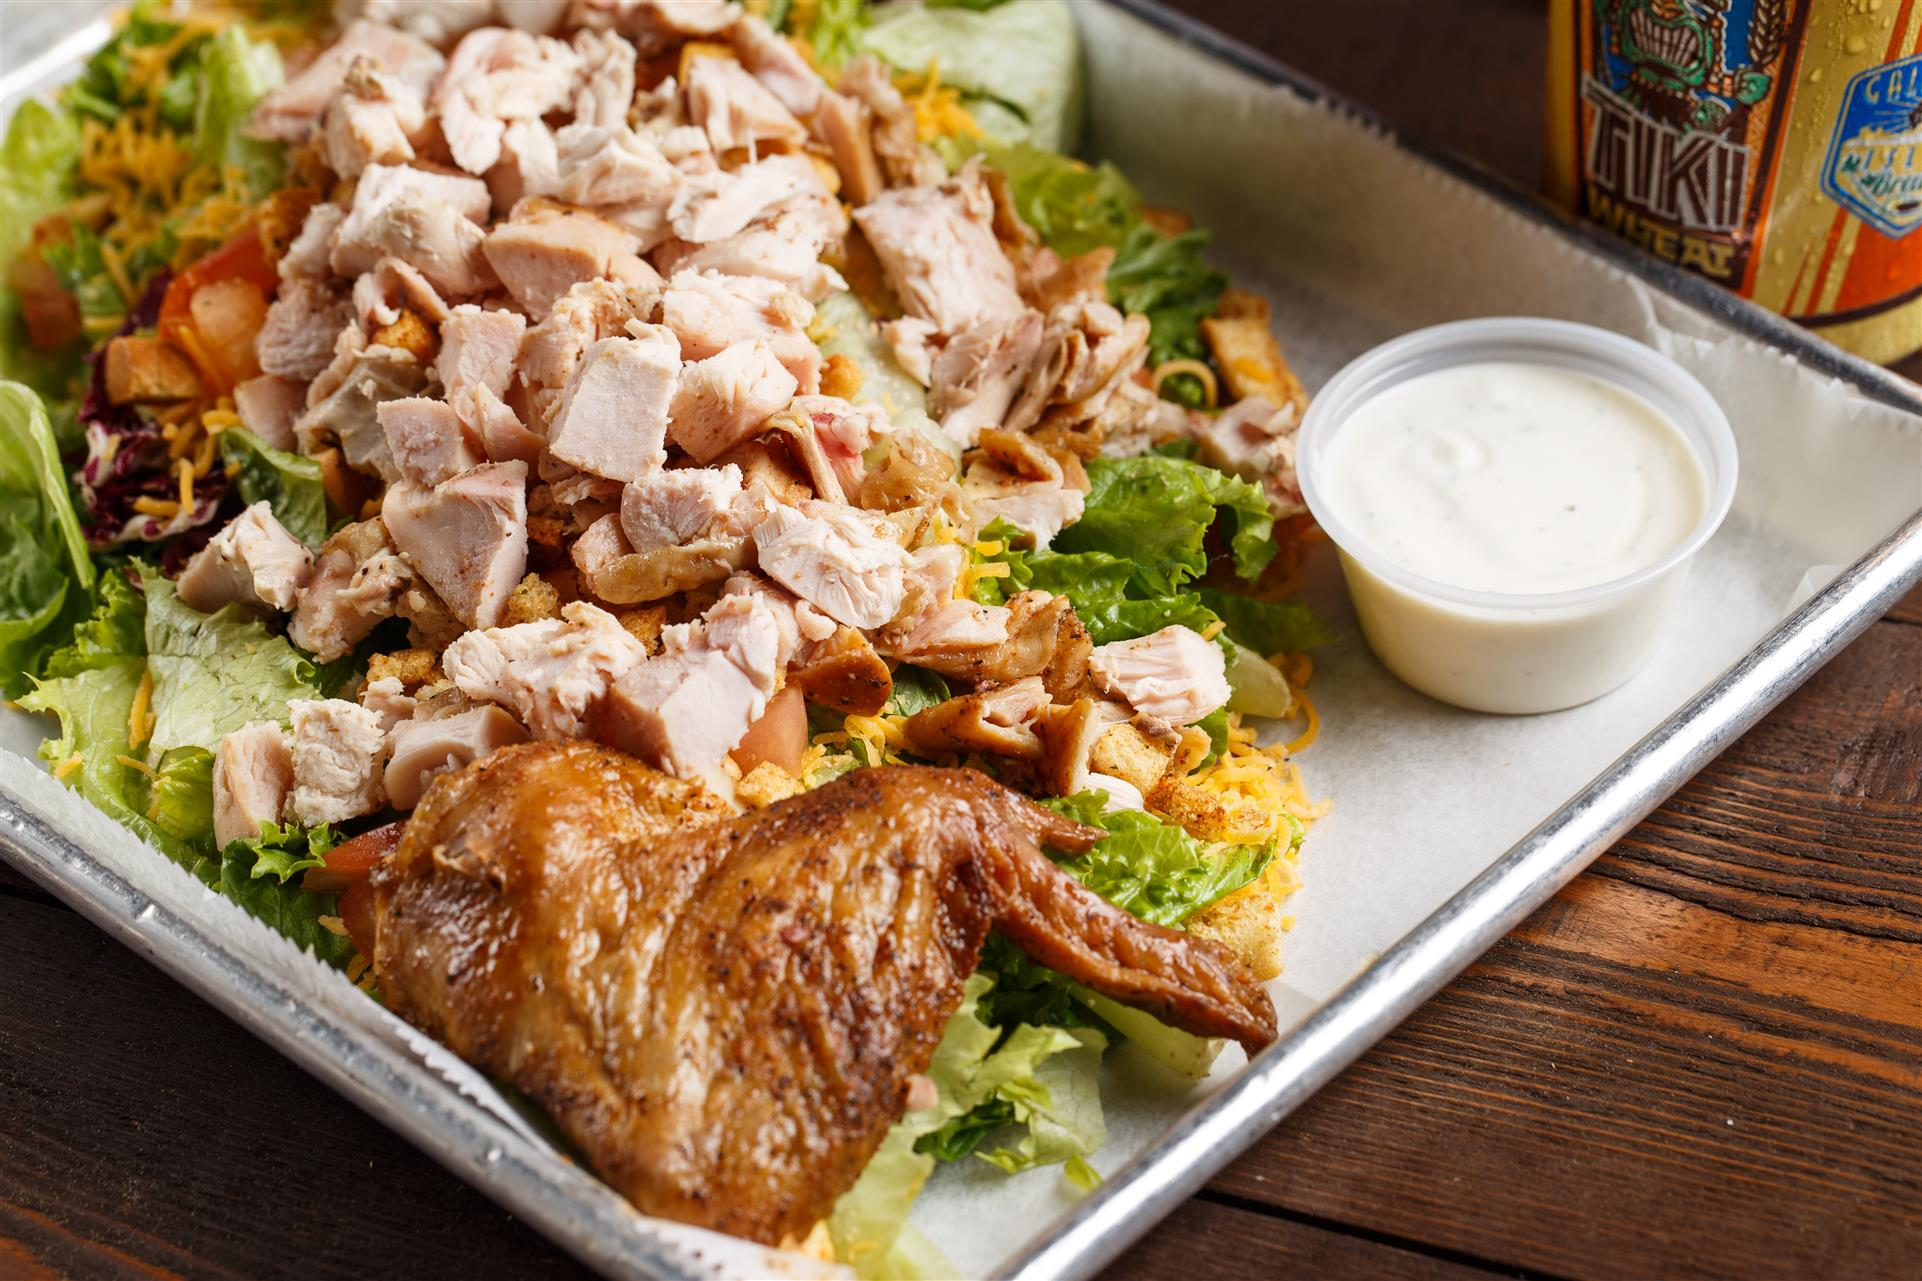 Roasted chicken cut up over a lettuce, croutons, cheese, and tomatoes